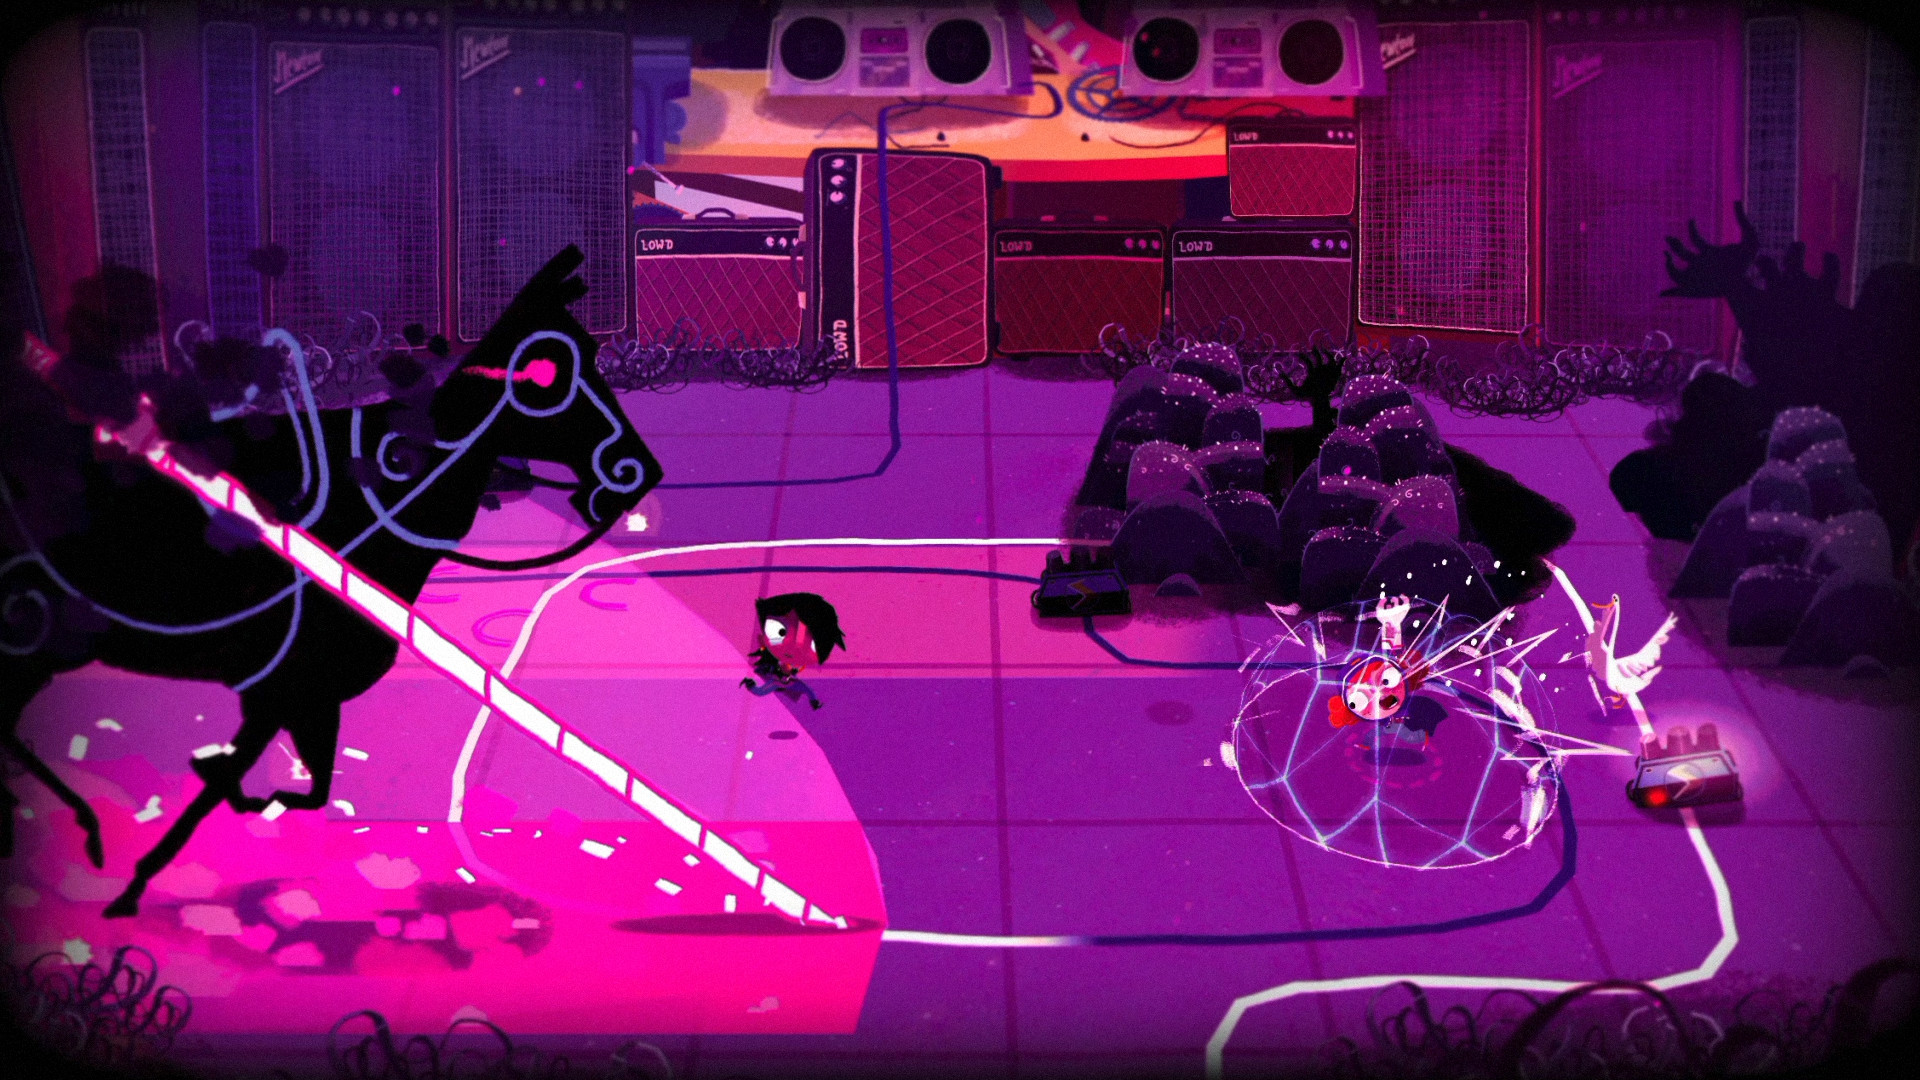 Knights And Bikes brings the Goonies magic to hand-drawn adventure tale